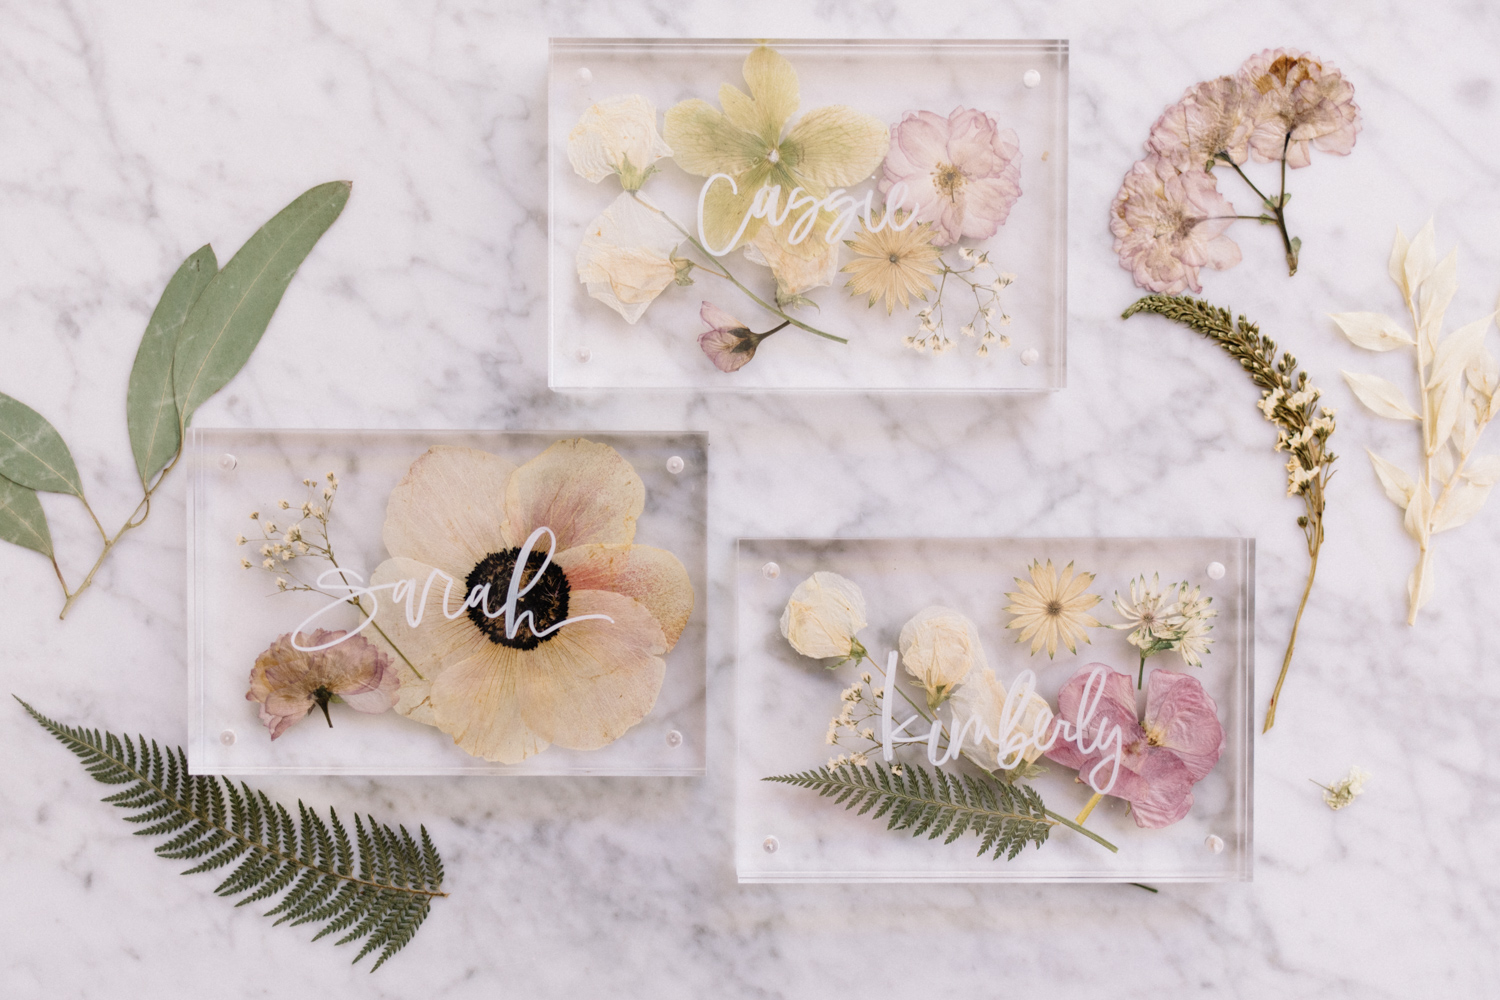 Pressed Flower and Acrylic Frame Place Card - A Fabulous Fete.